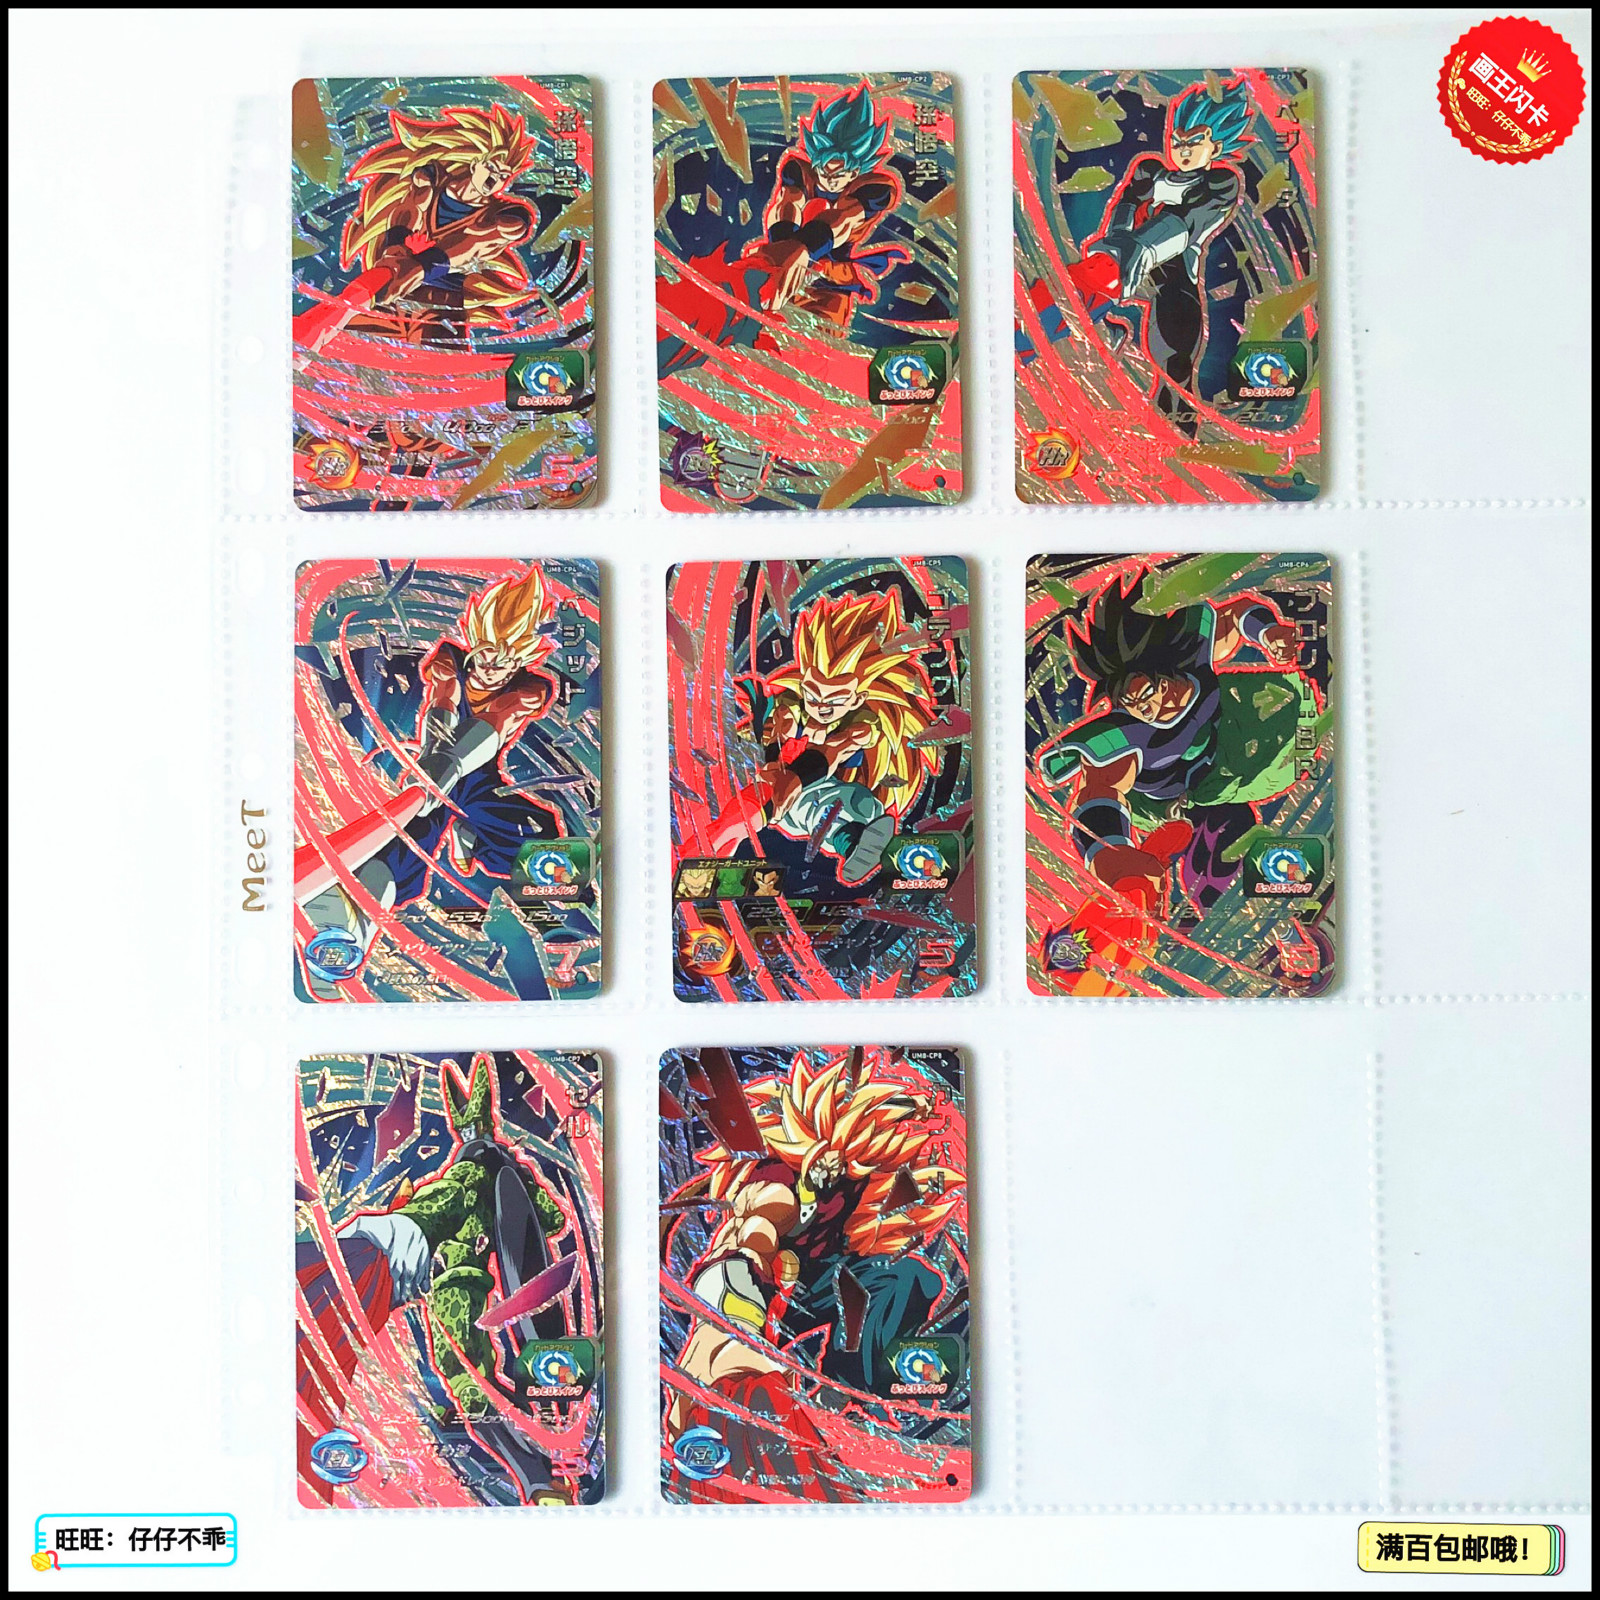 Japan Original Dragon Ball Hero Card UM8 CP Goku Toys Hobbies Collectibles Game Collection Anime Cards